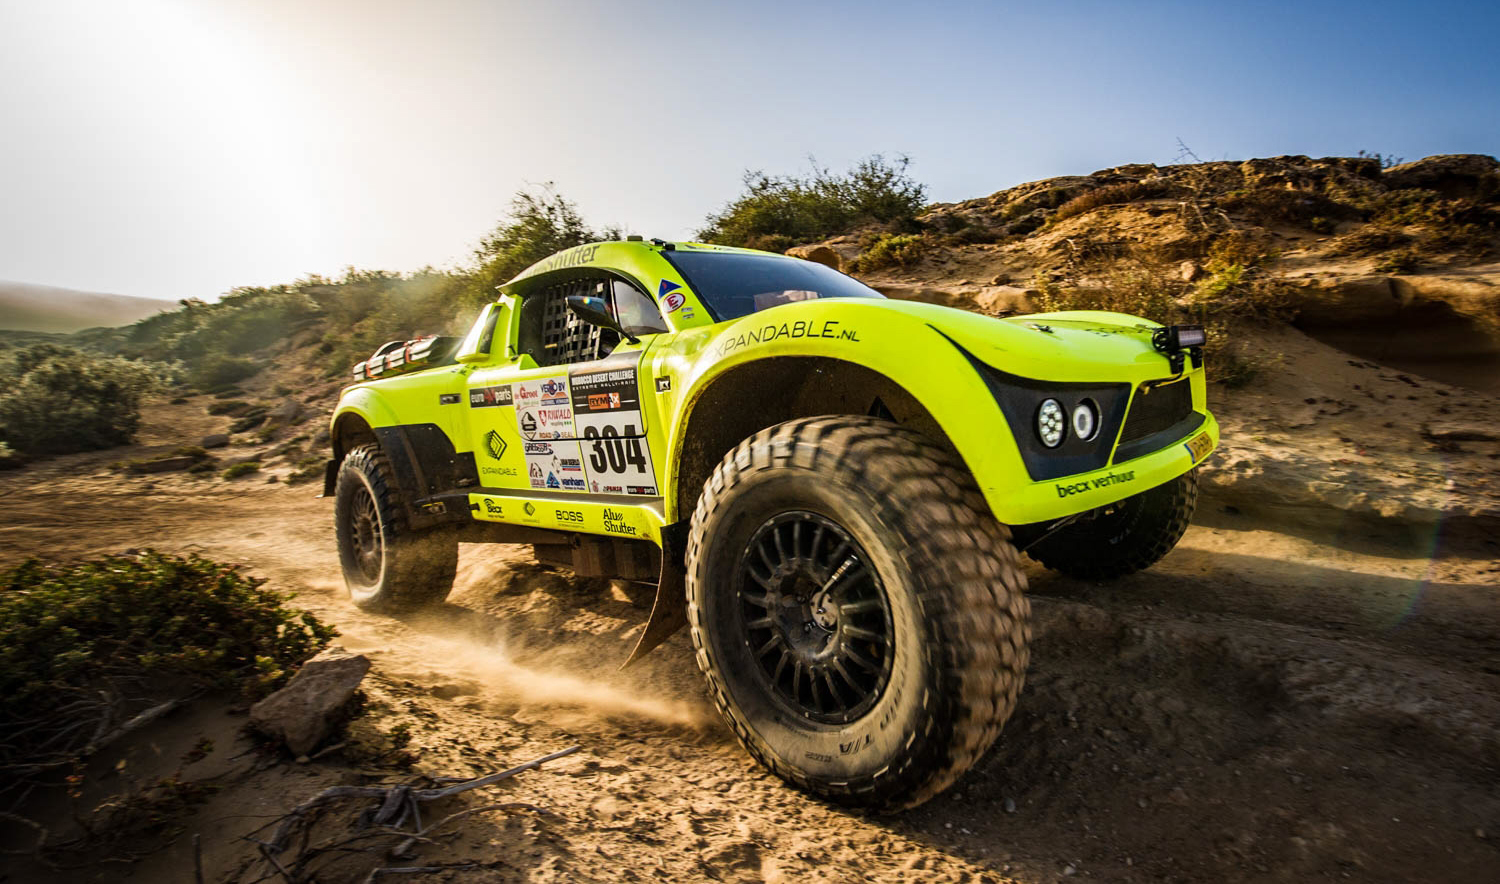 Becx Competition to Dakar 2019